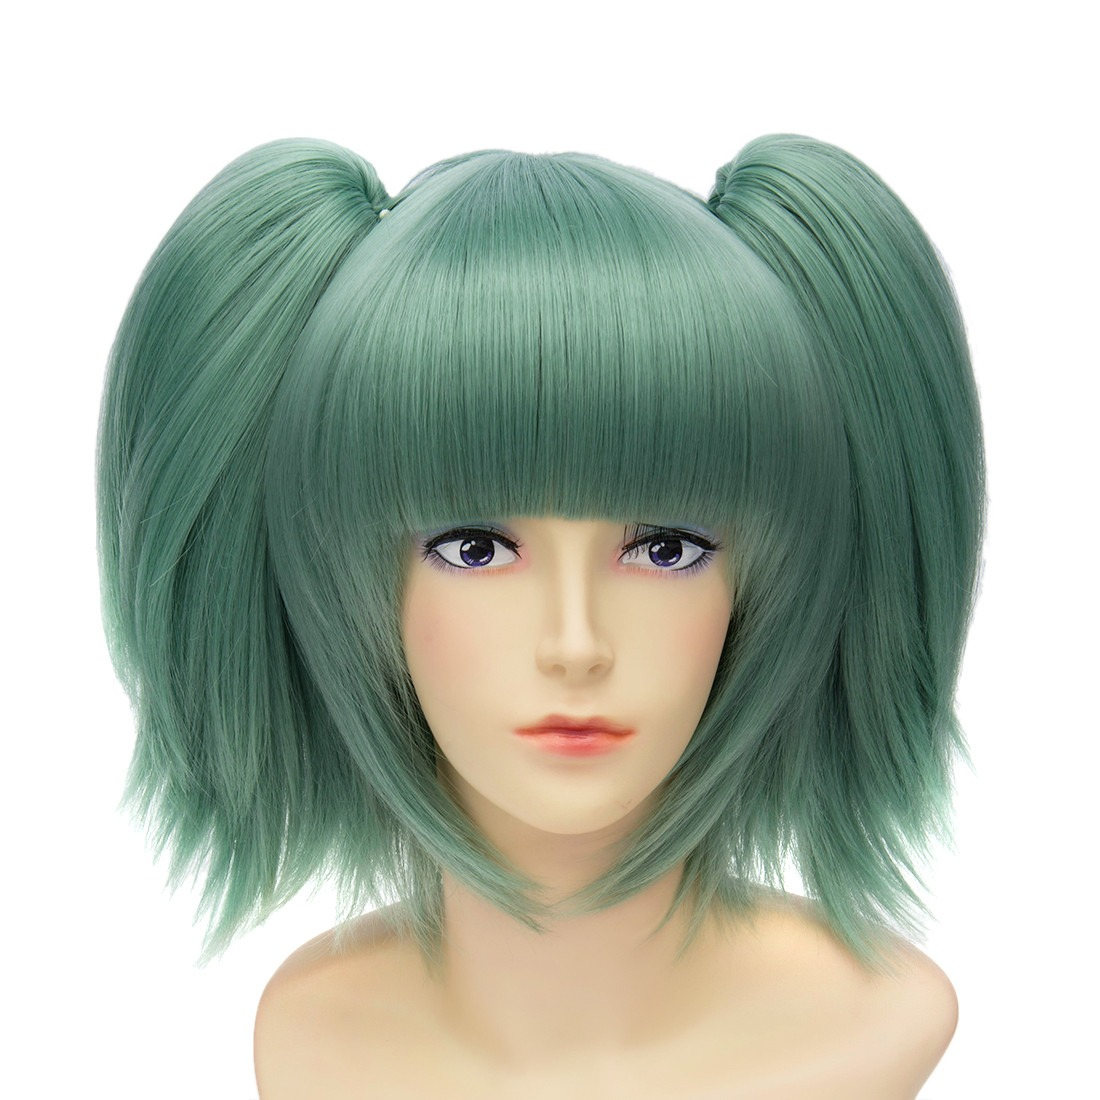 Women Green Bangs Double Side Braid Short Straight Cosplay Anime Costume Wigs<br><br>Aliexpress